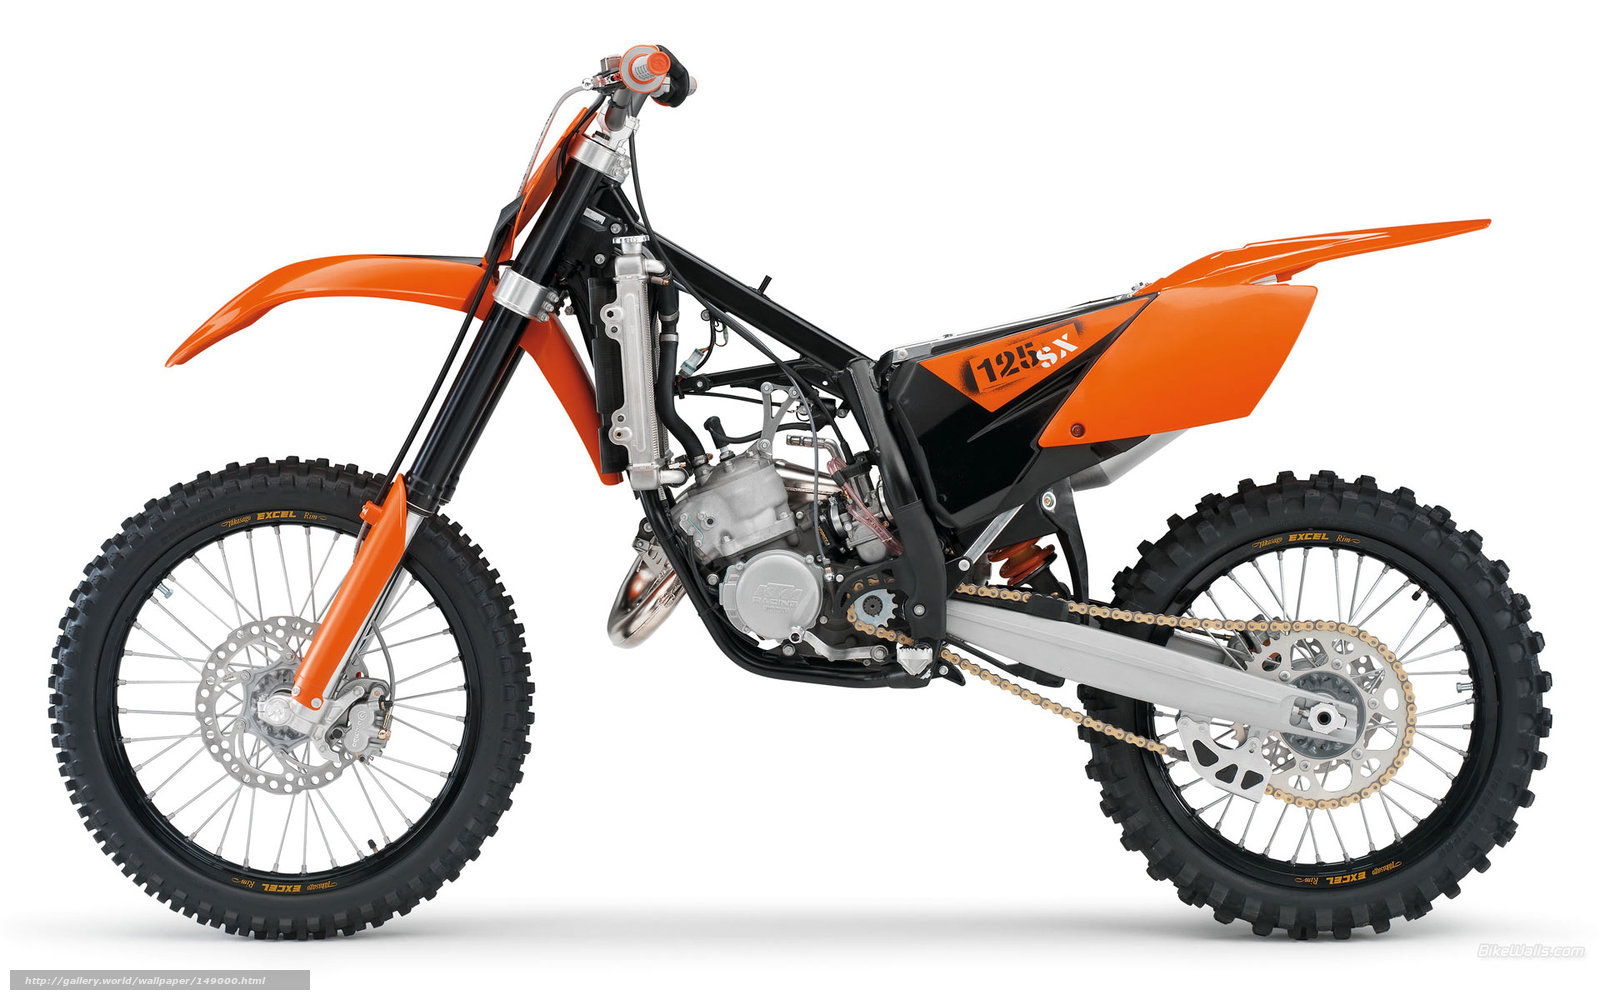 download wallpaper ktm motocross sx 125 sx 125 sx 2006. Black Bedroom Furniture Sets. Home Design Ideas